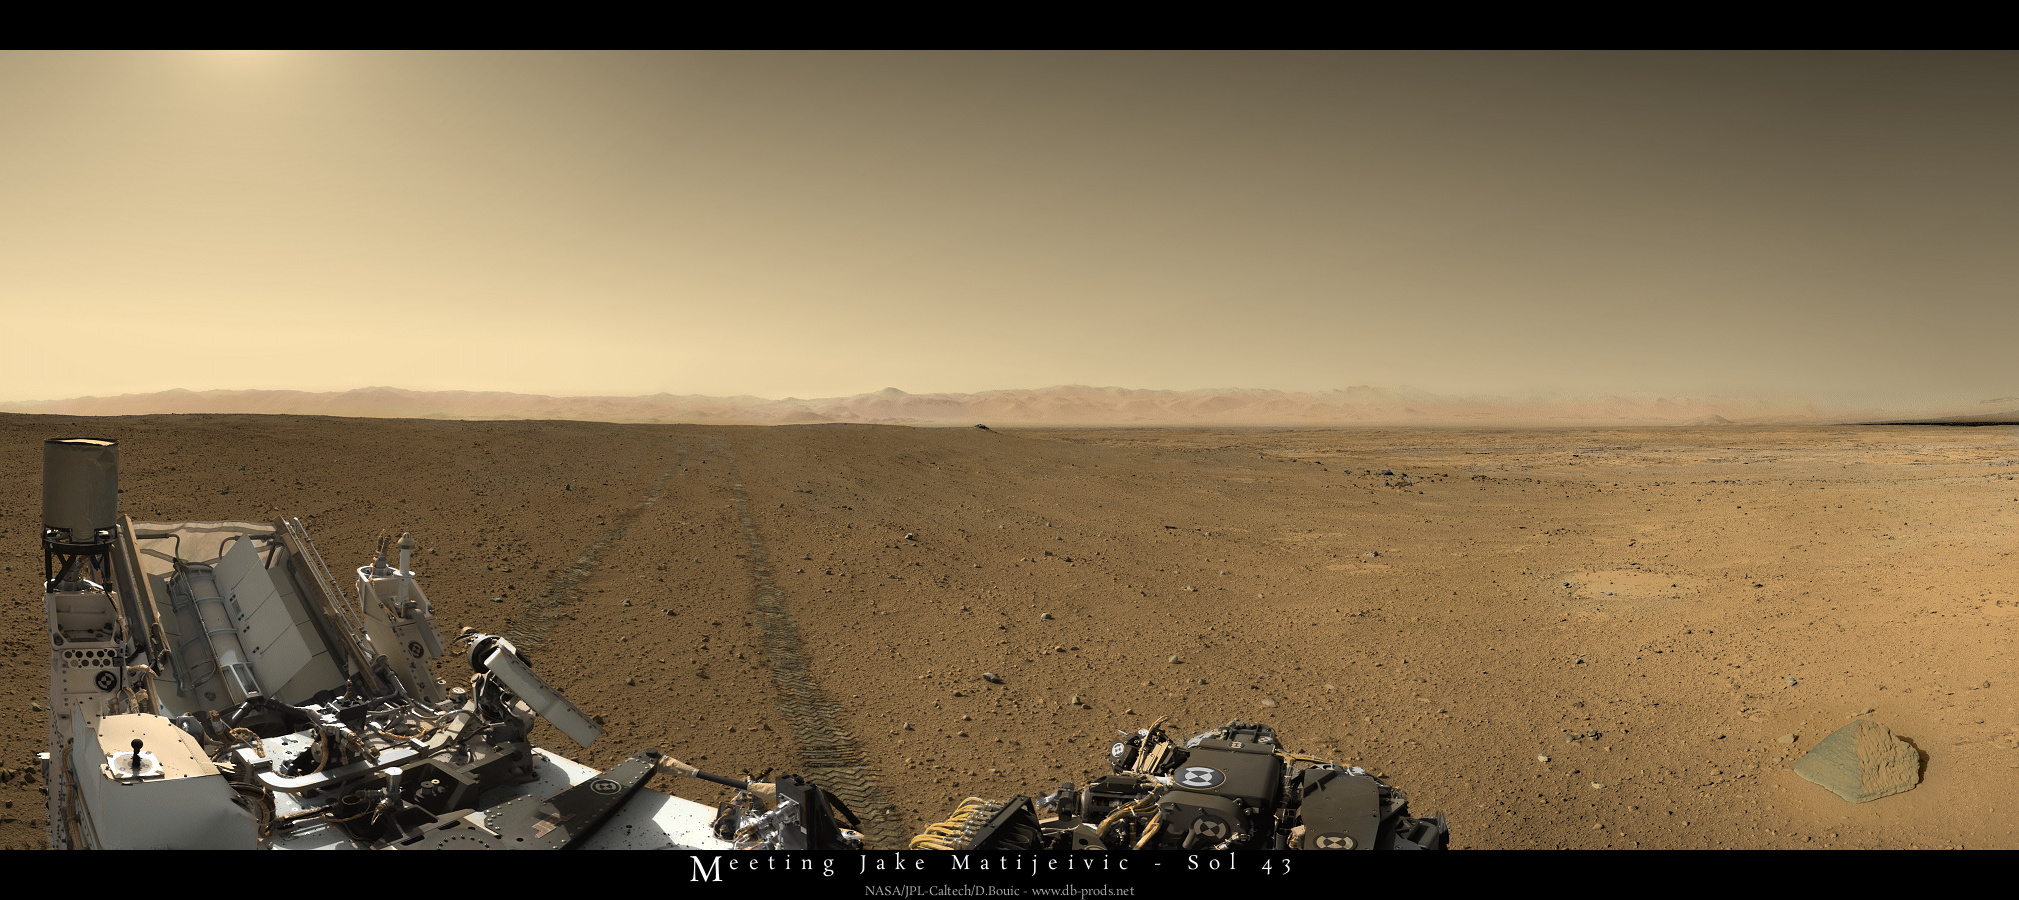 http://planetary.s3.amazonaws.com/assets/images/4-mars/2013/20130214_Sol43_pano_postcard_colorized_web.jpg